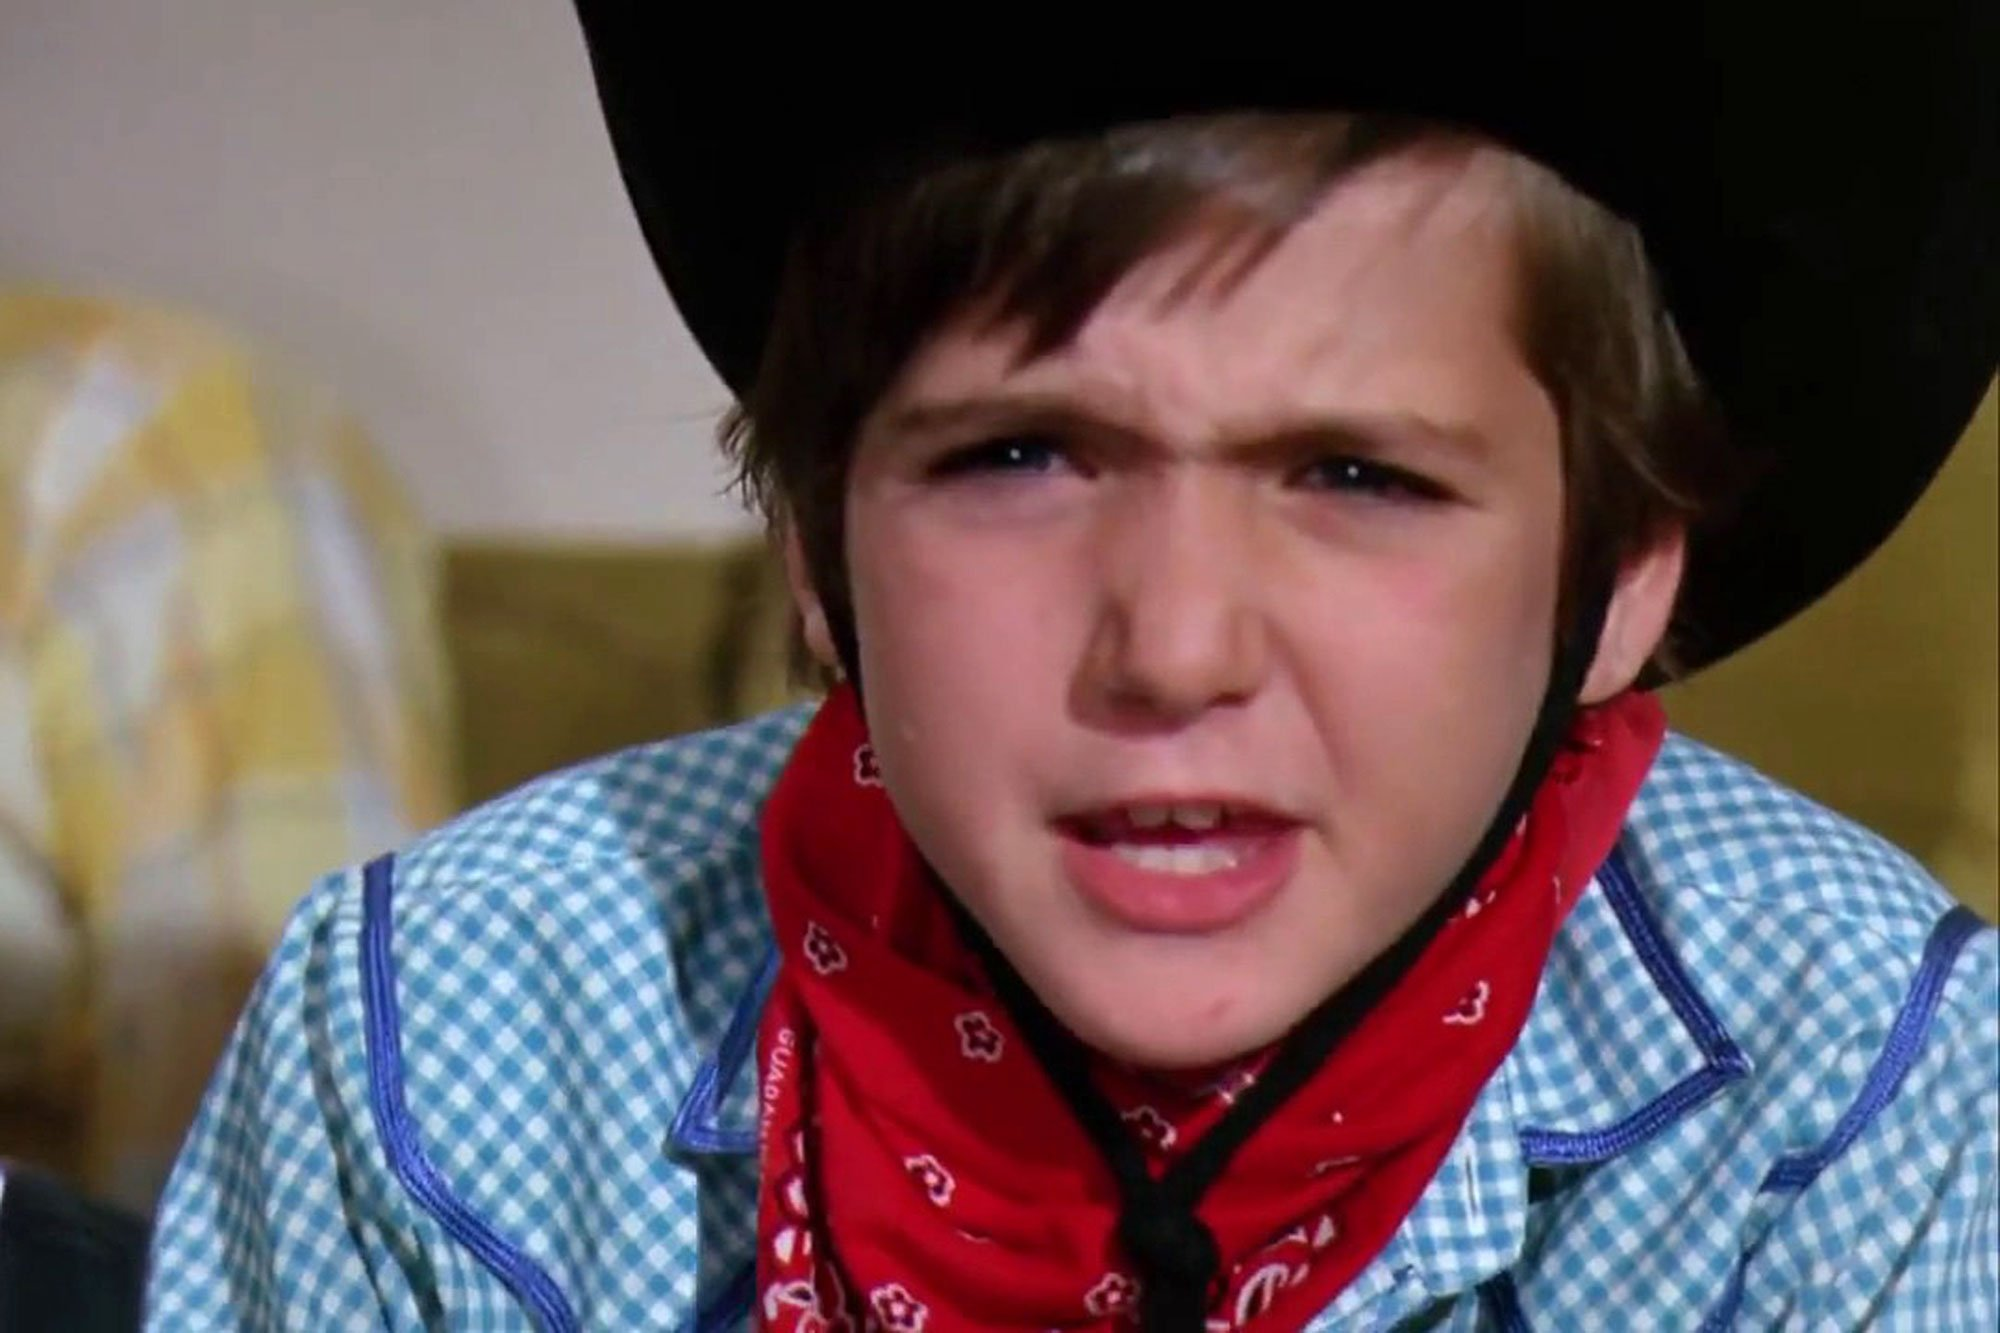 Jeopardy: Willy Wonka child star makes surprise appearance